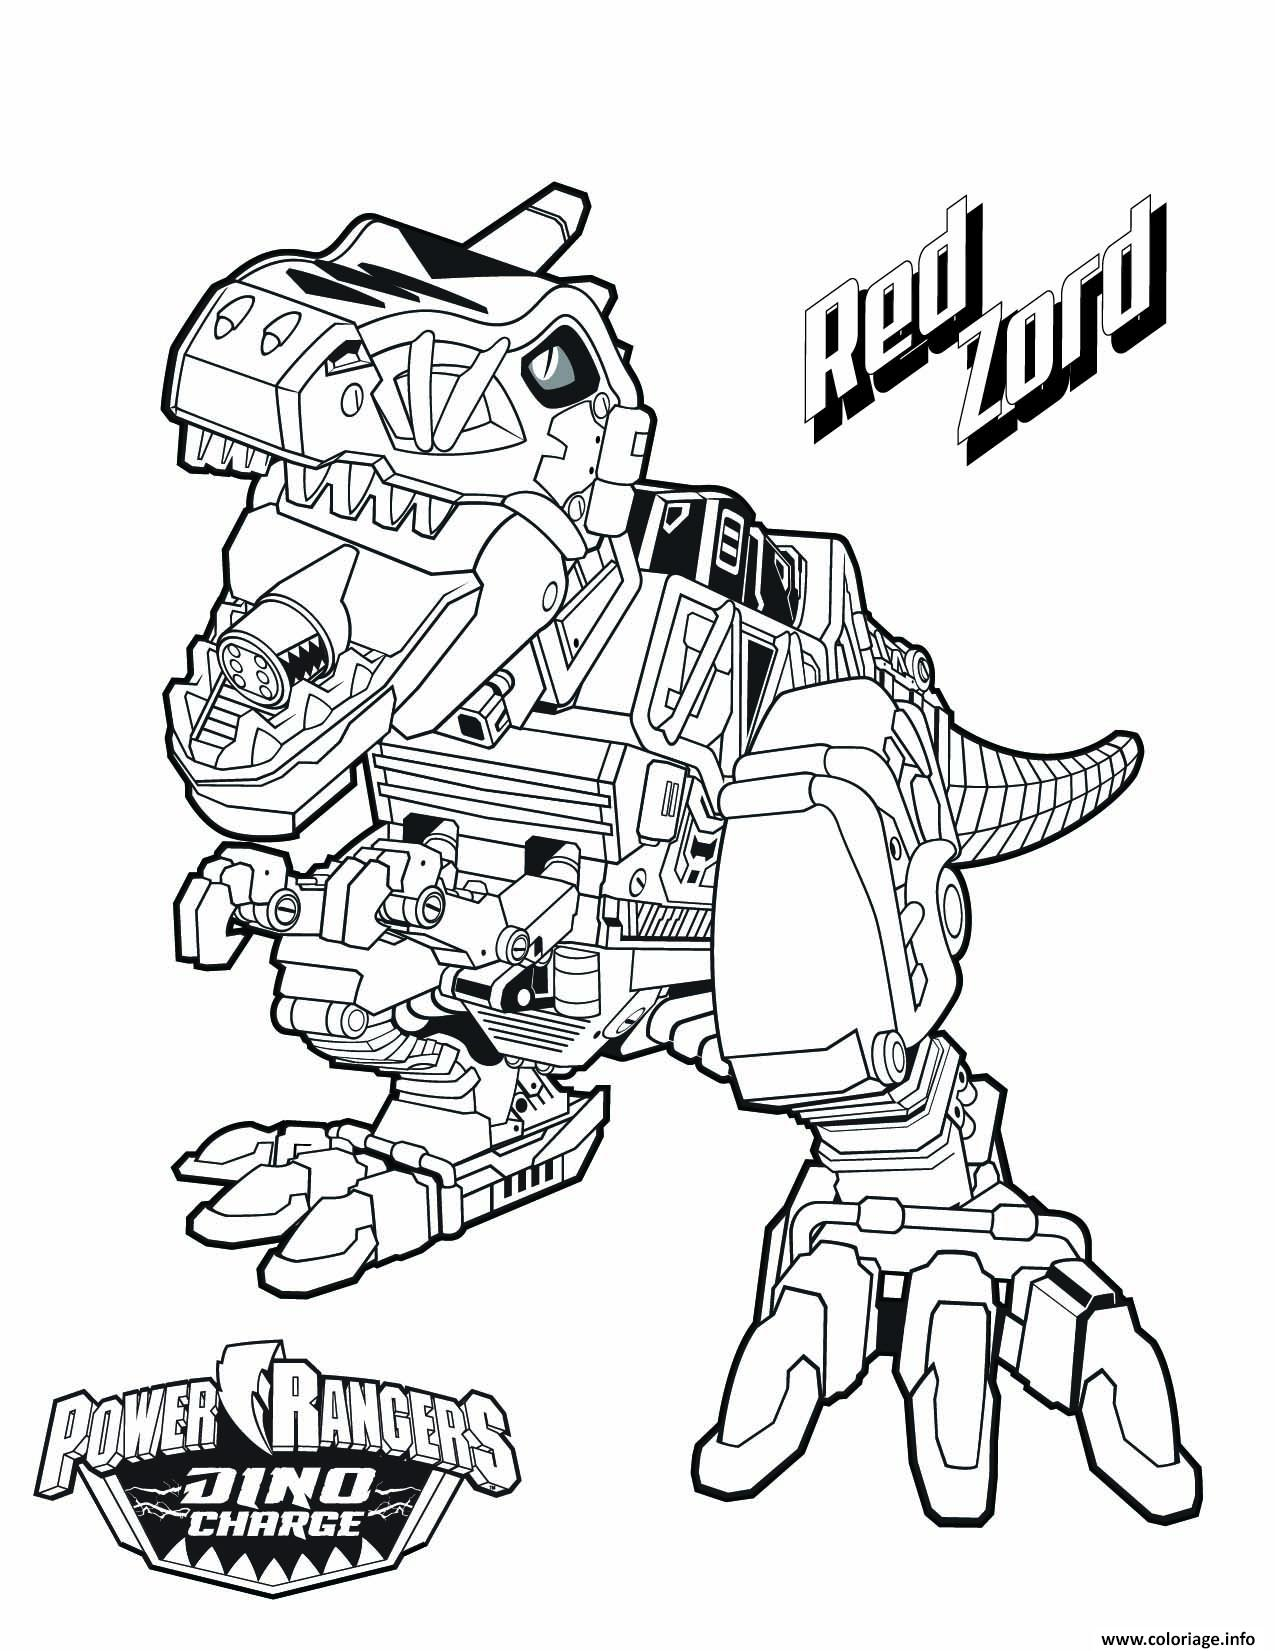 Coloriage power rangers dino charge red zord dessin - Power rangers samurai dessin ...